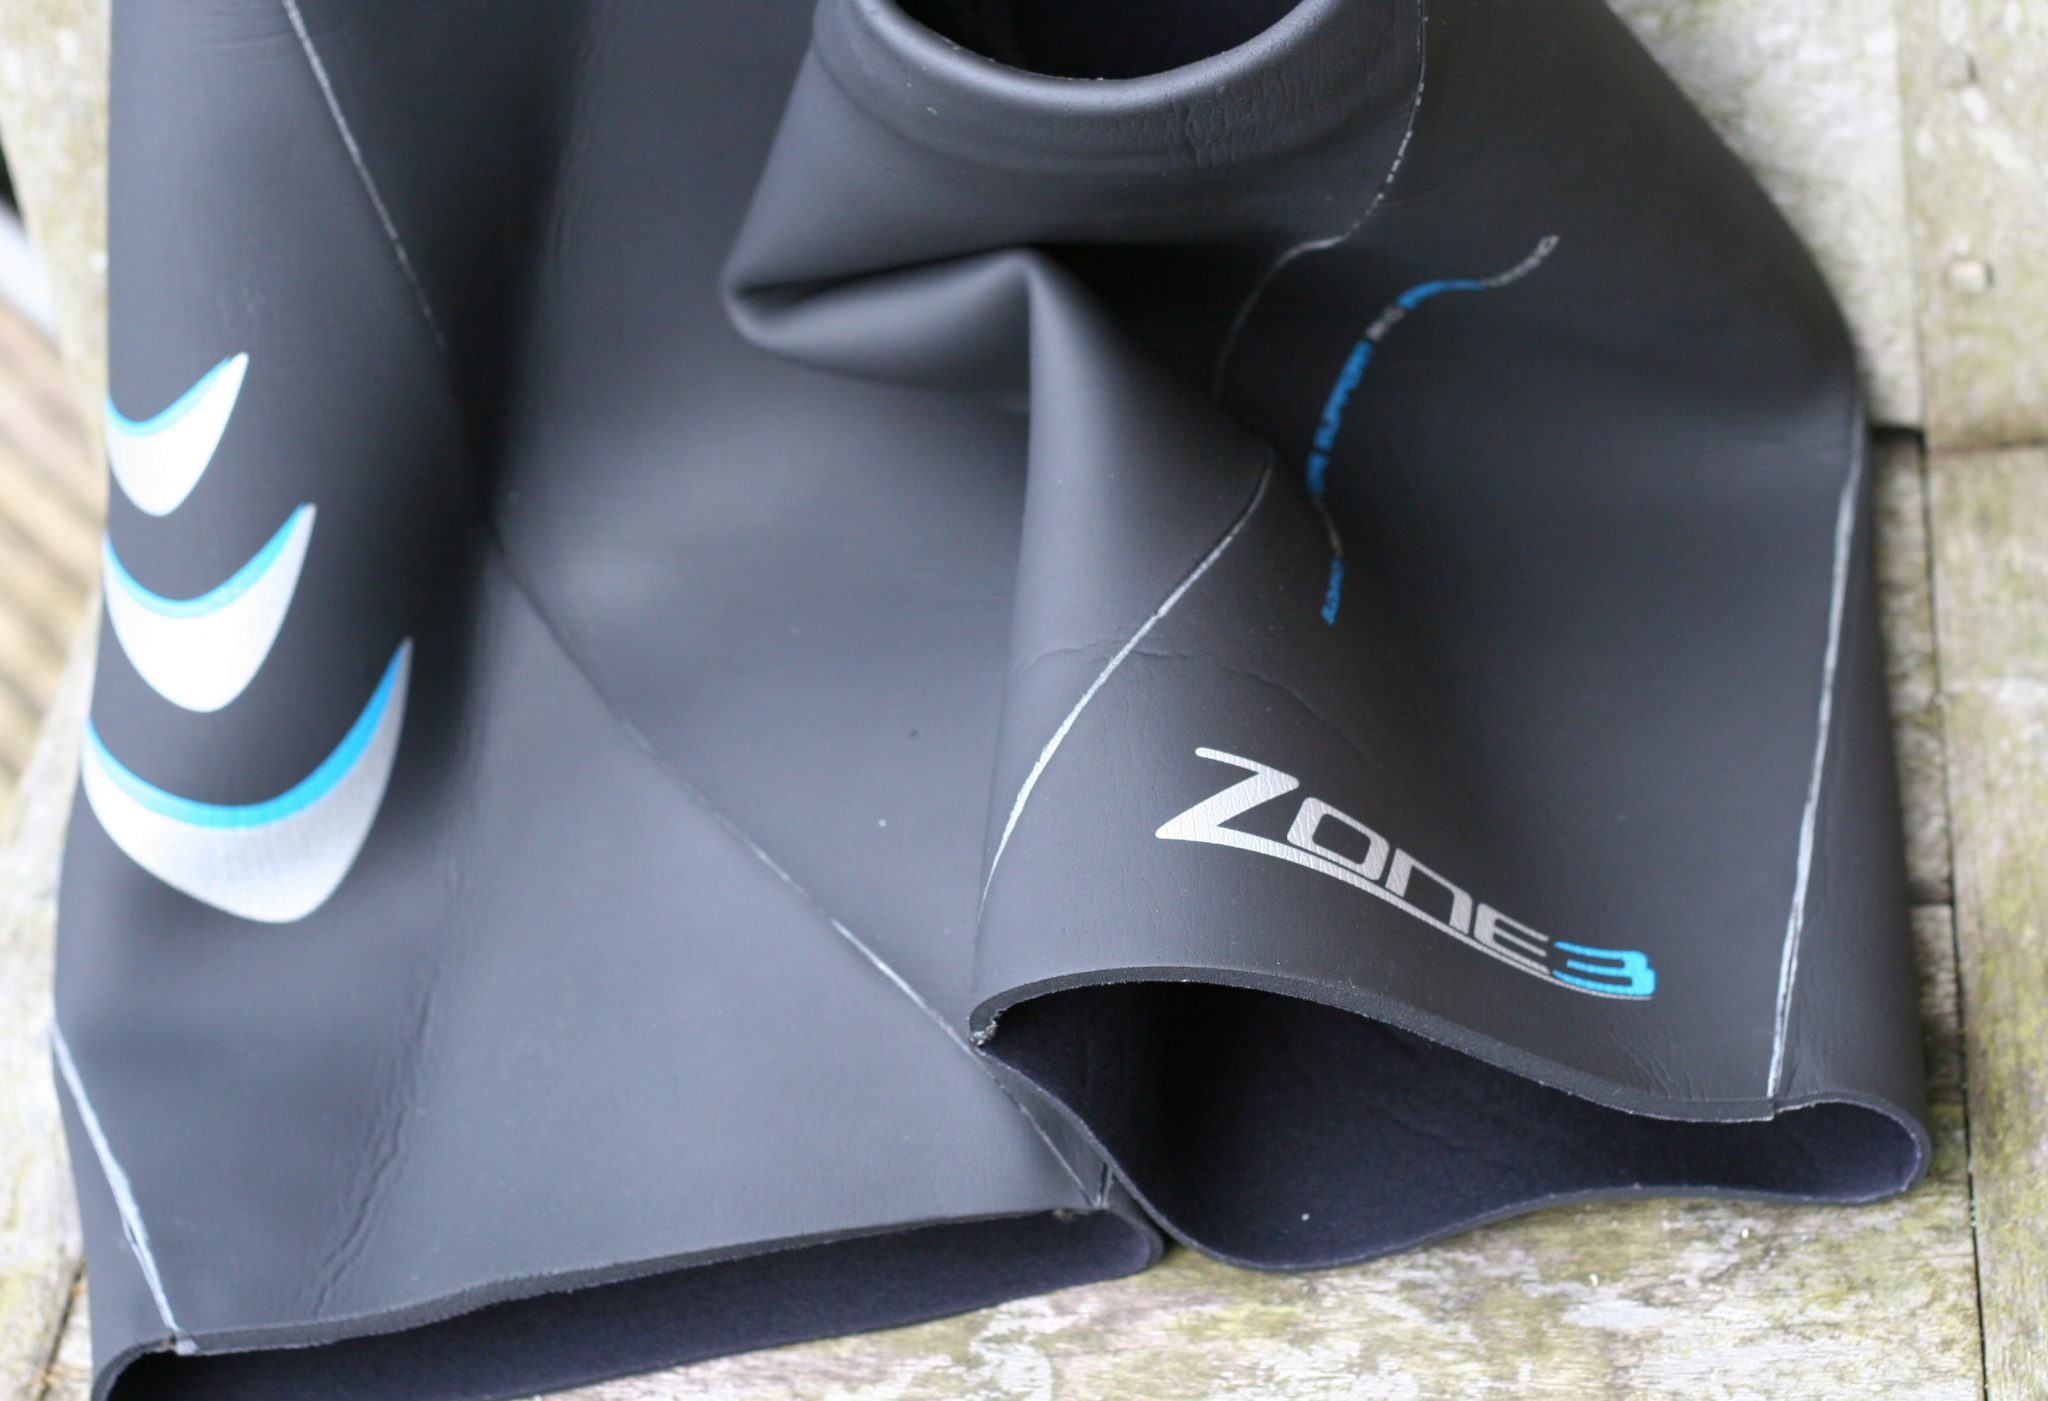 ec9326bd02 Review: Zone3 Bouyancy Shorts : ROKA Sim Pro : Bluesevently Core ...